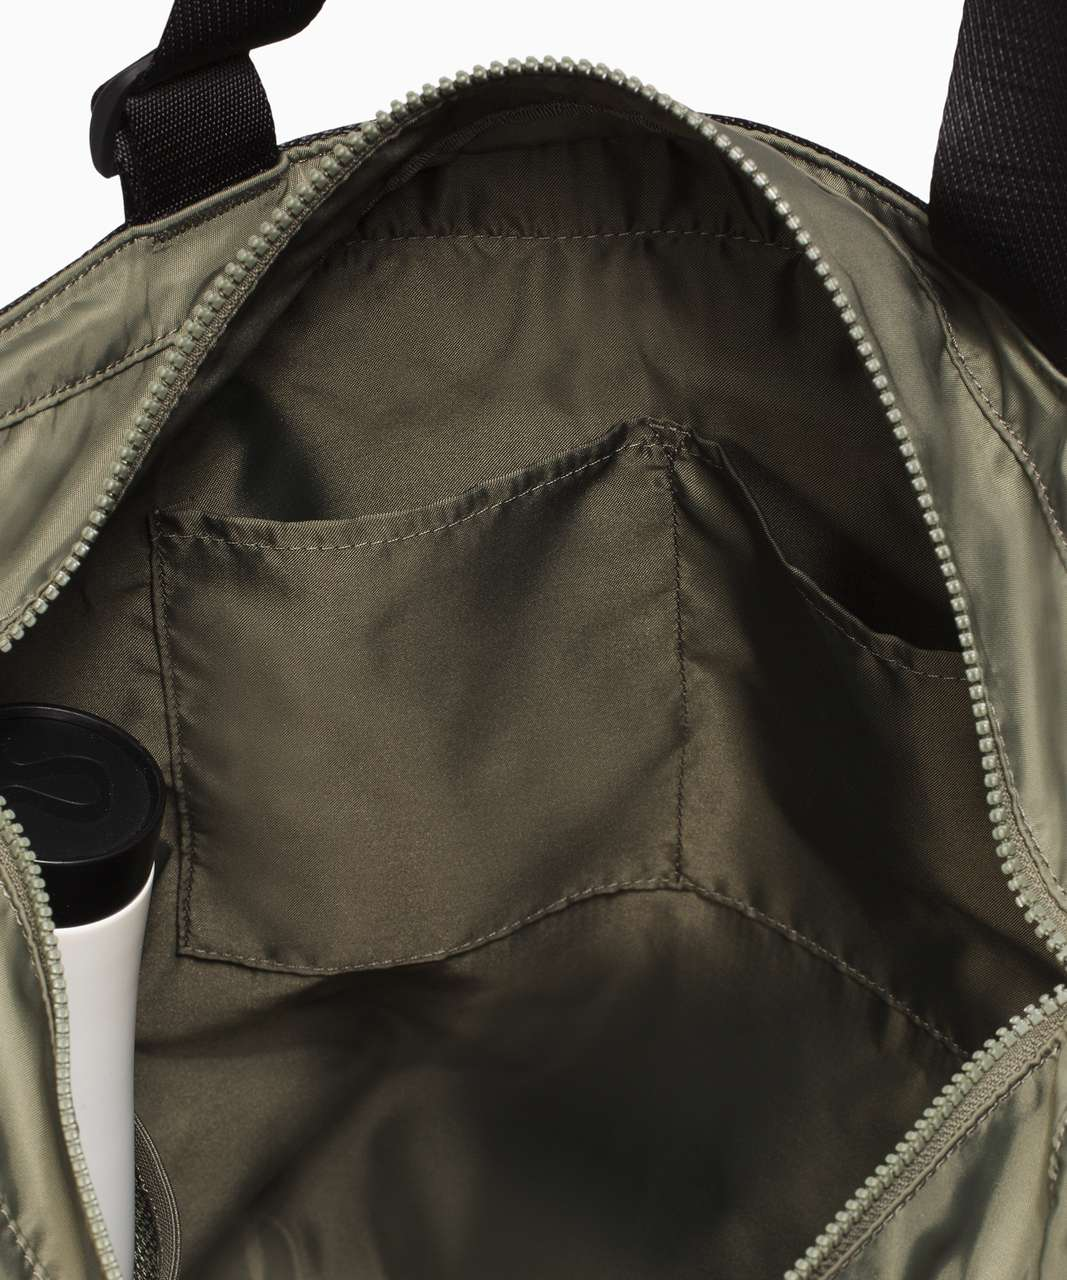 Lululemon The Rest is Written Tote - Army Green